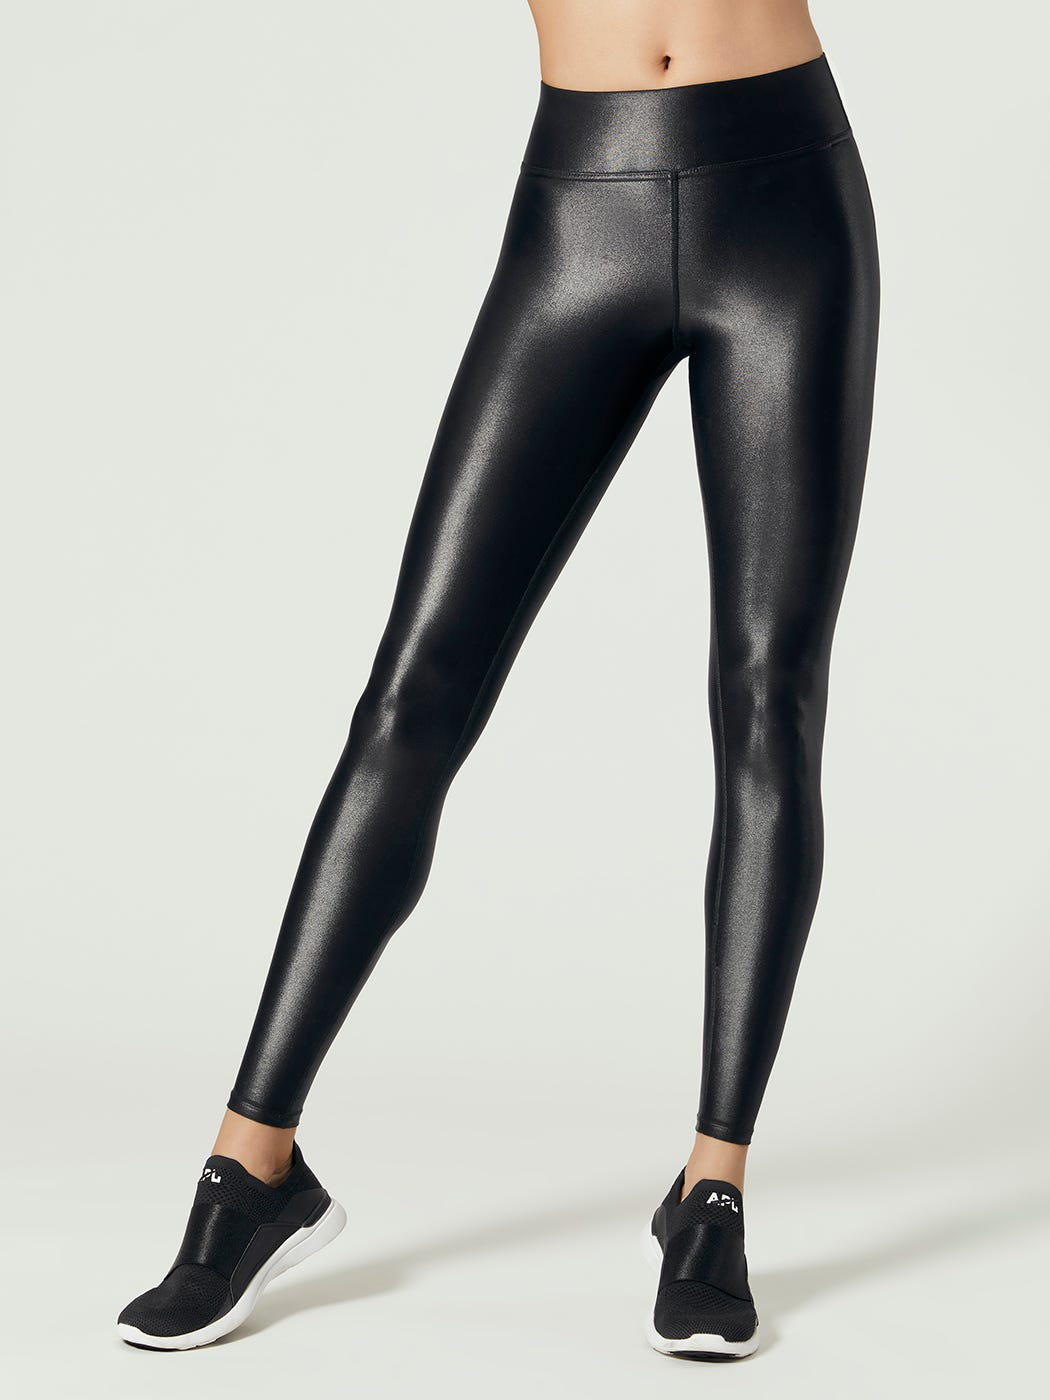 bf56bc1cc0f2bf Best Black Leggings - Reviews On Top Brands & Styles